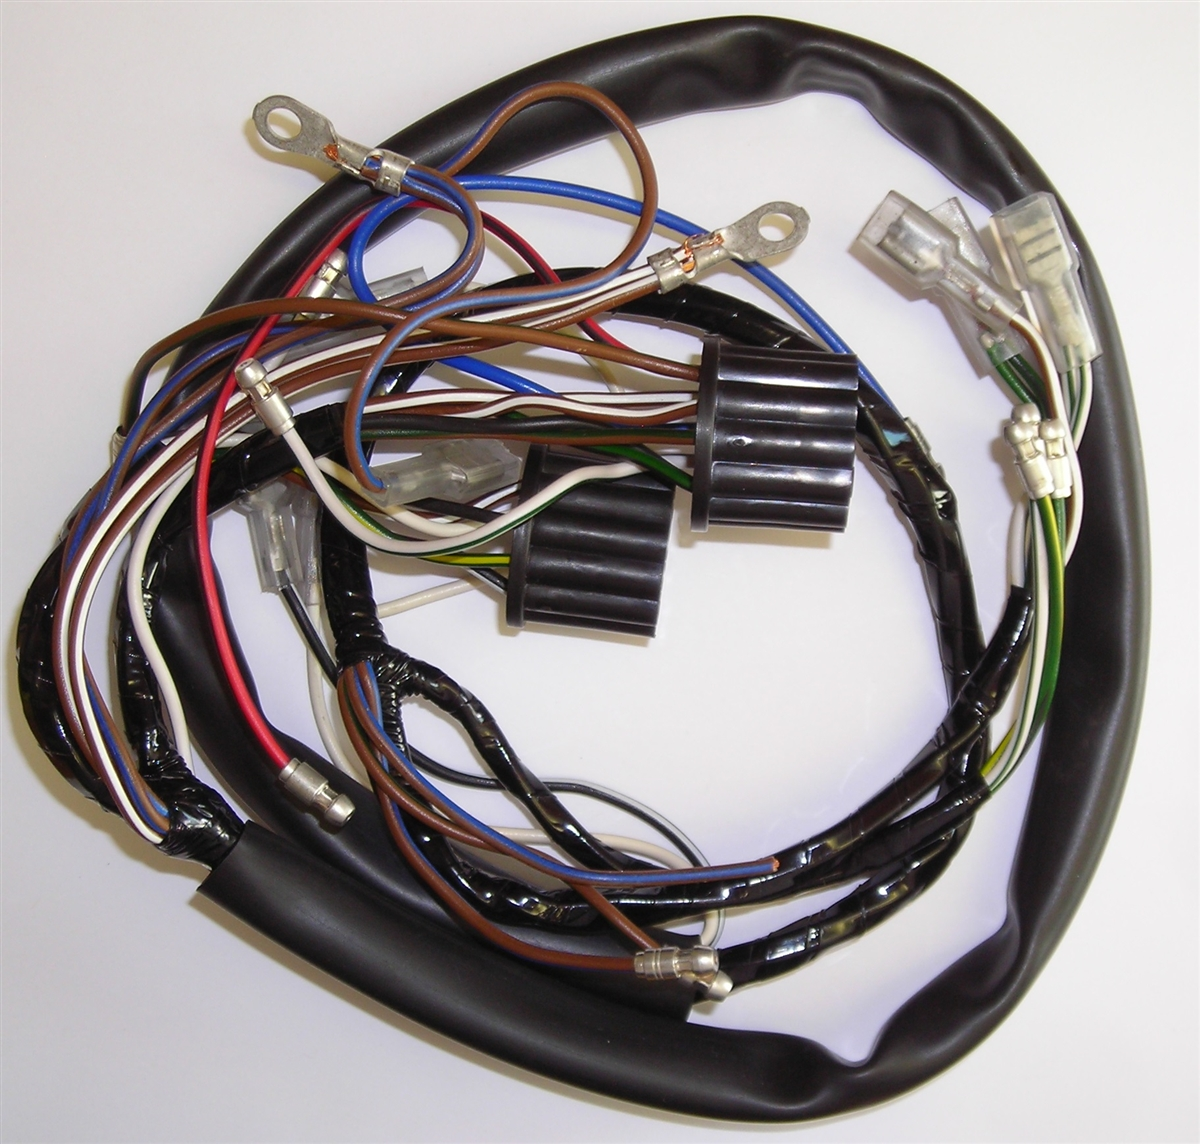 MC123PP 2?1374673704 motorcycle wiring harness motorcycle wiring harness at mifinder.co